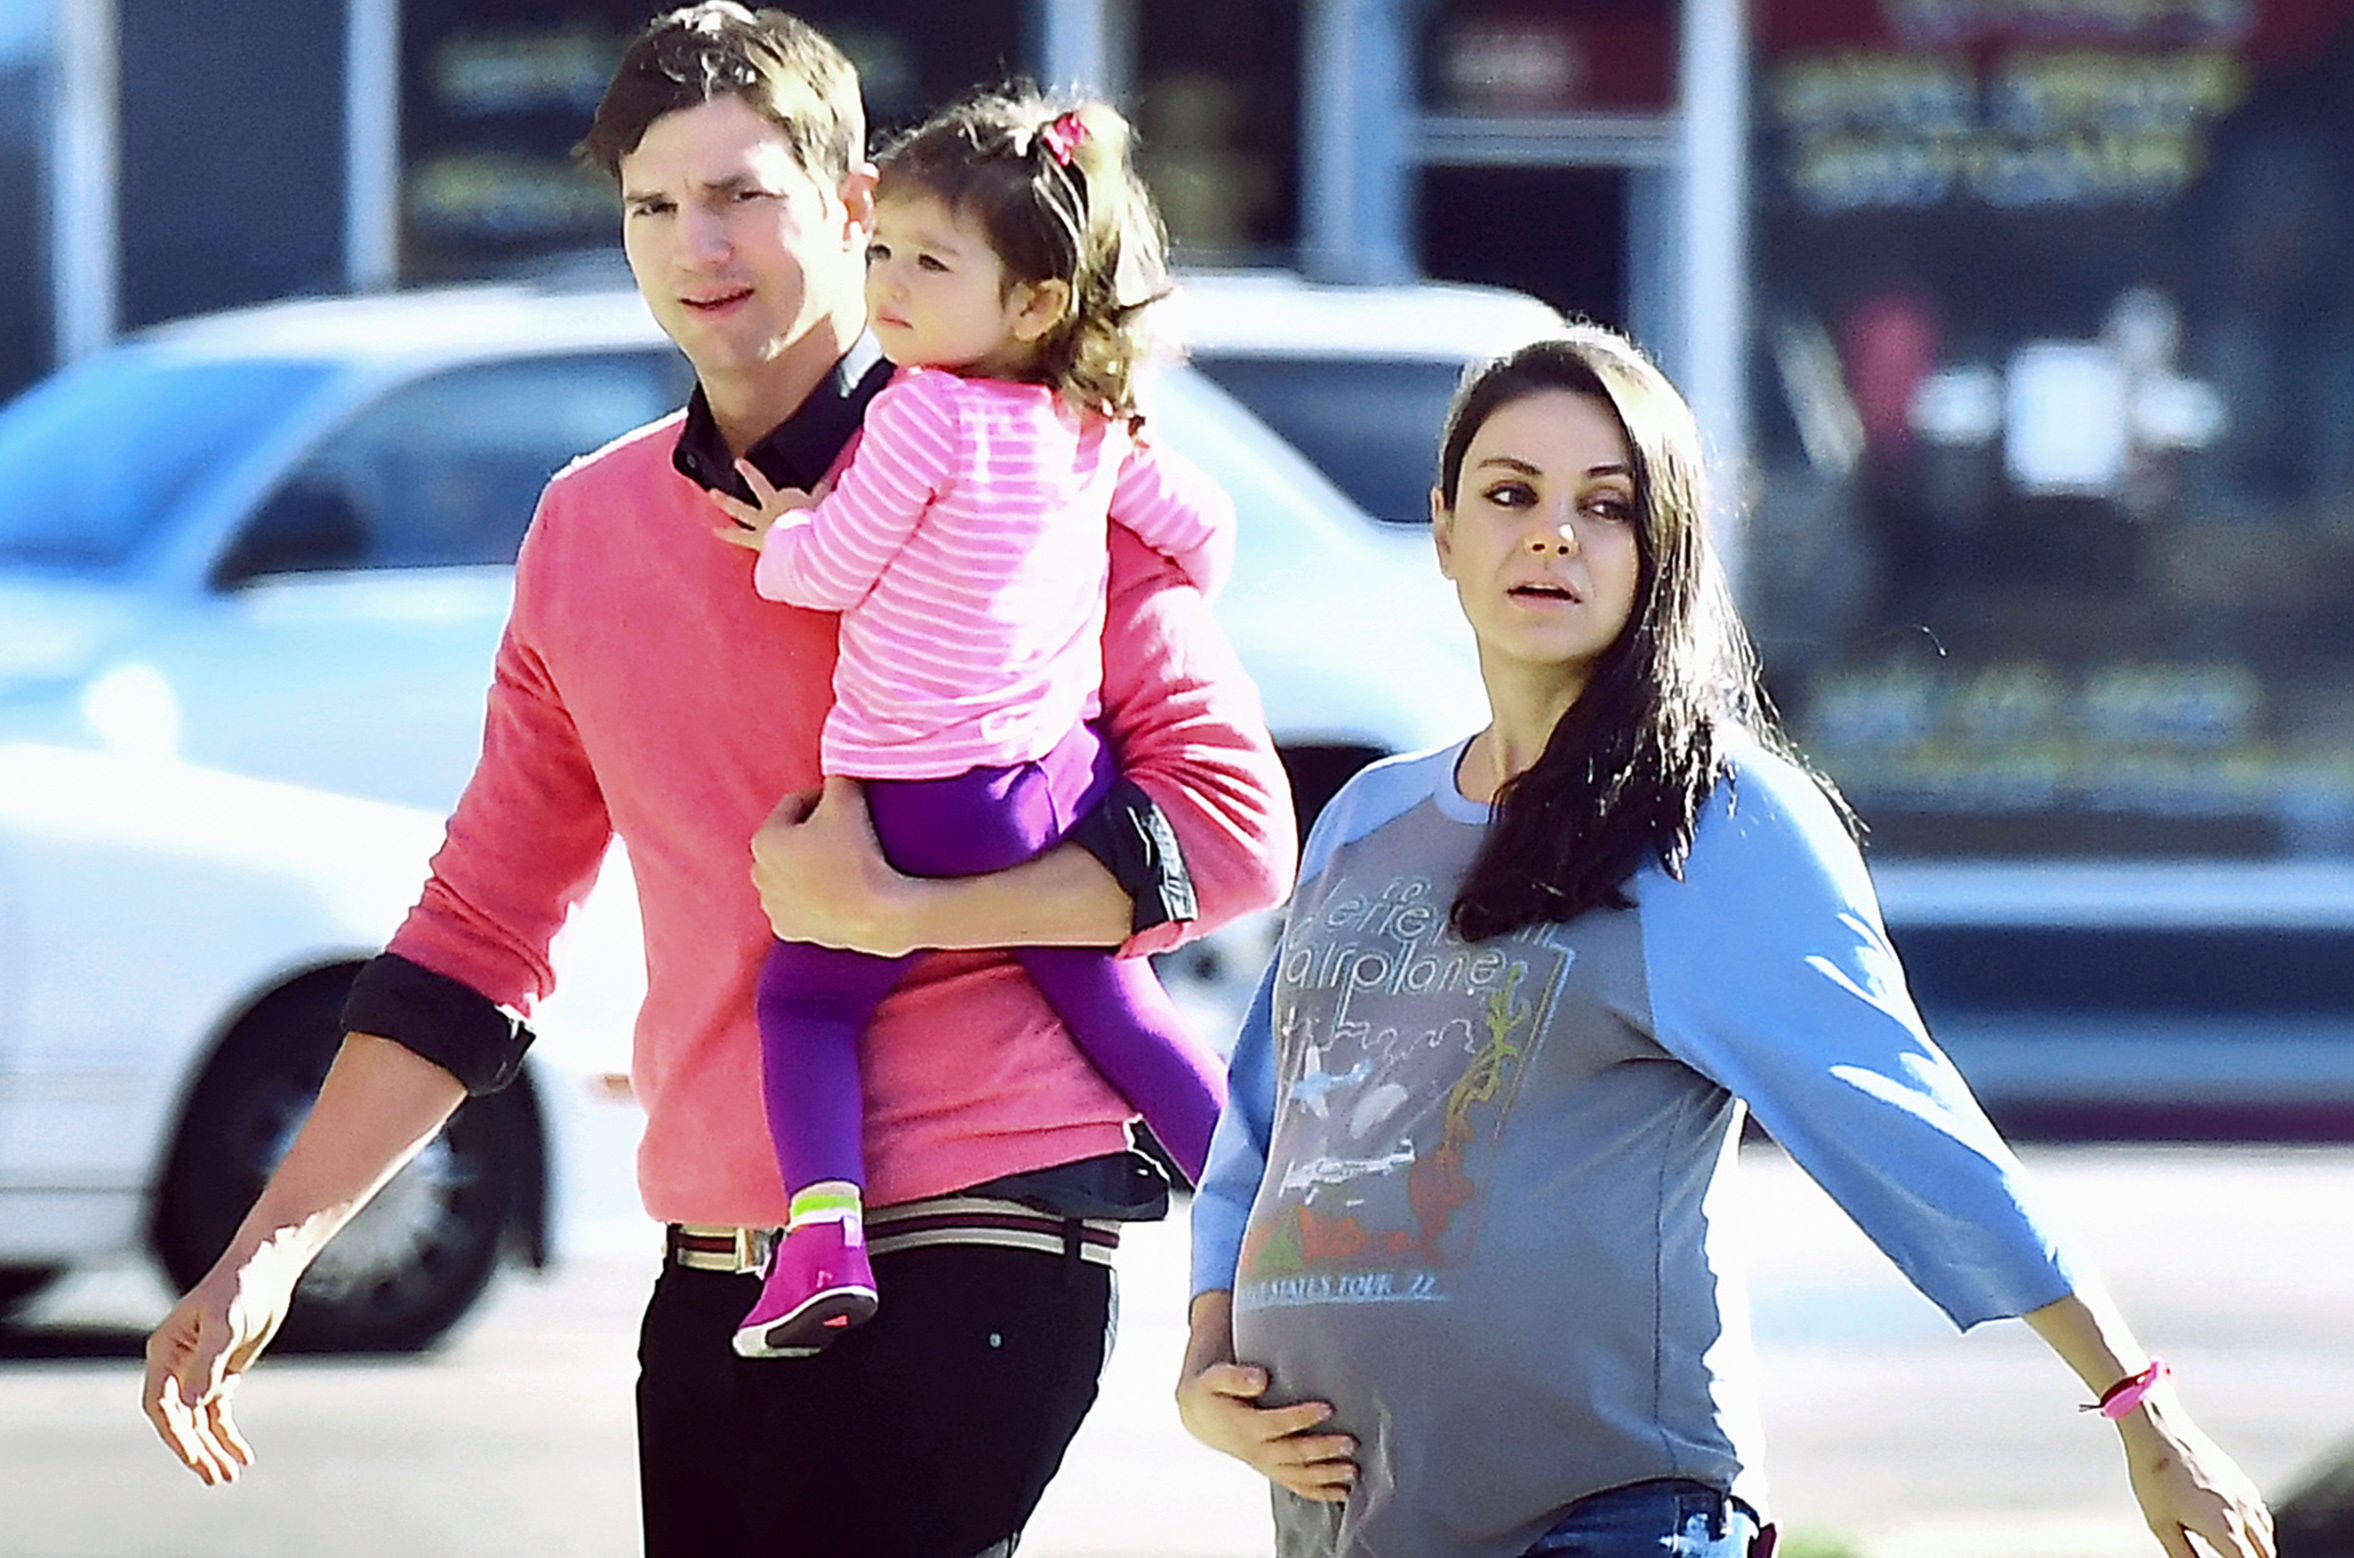 Mila Kunis Gives Her Daughter Wine Every Friday for